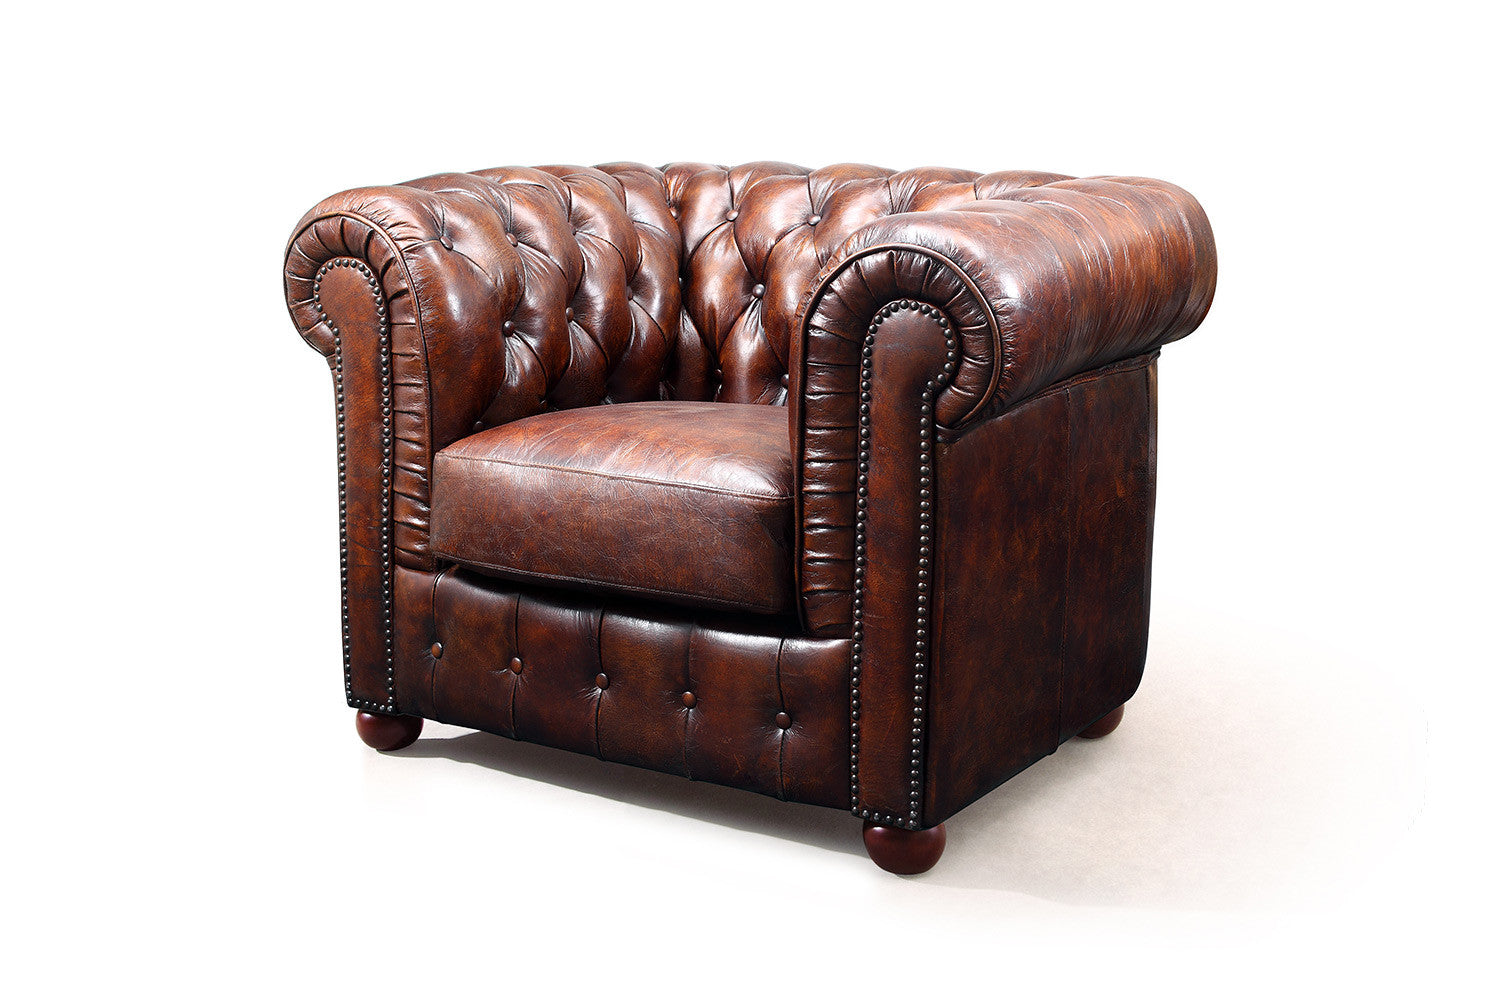 fauteuil chesterfield original rose moore With fauteuil chesterfield cuir